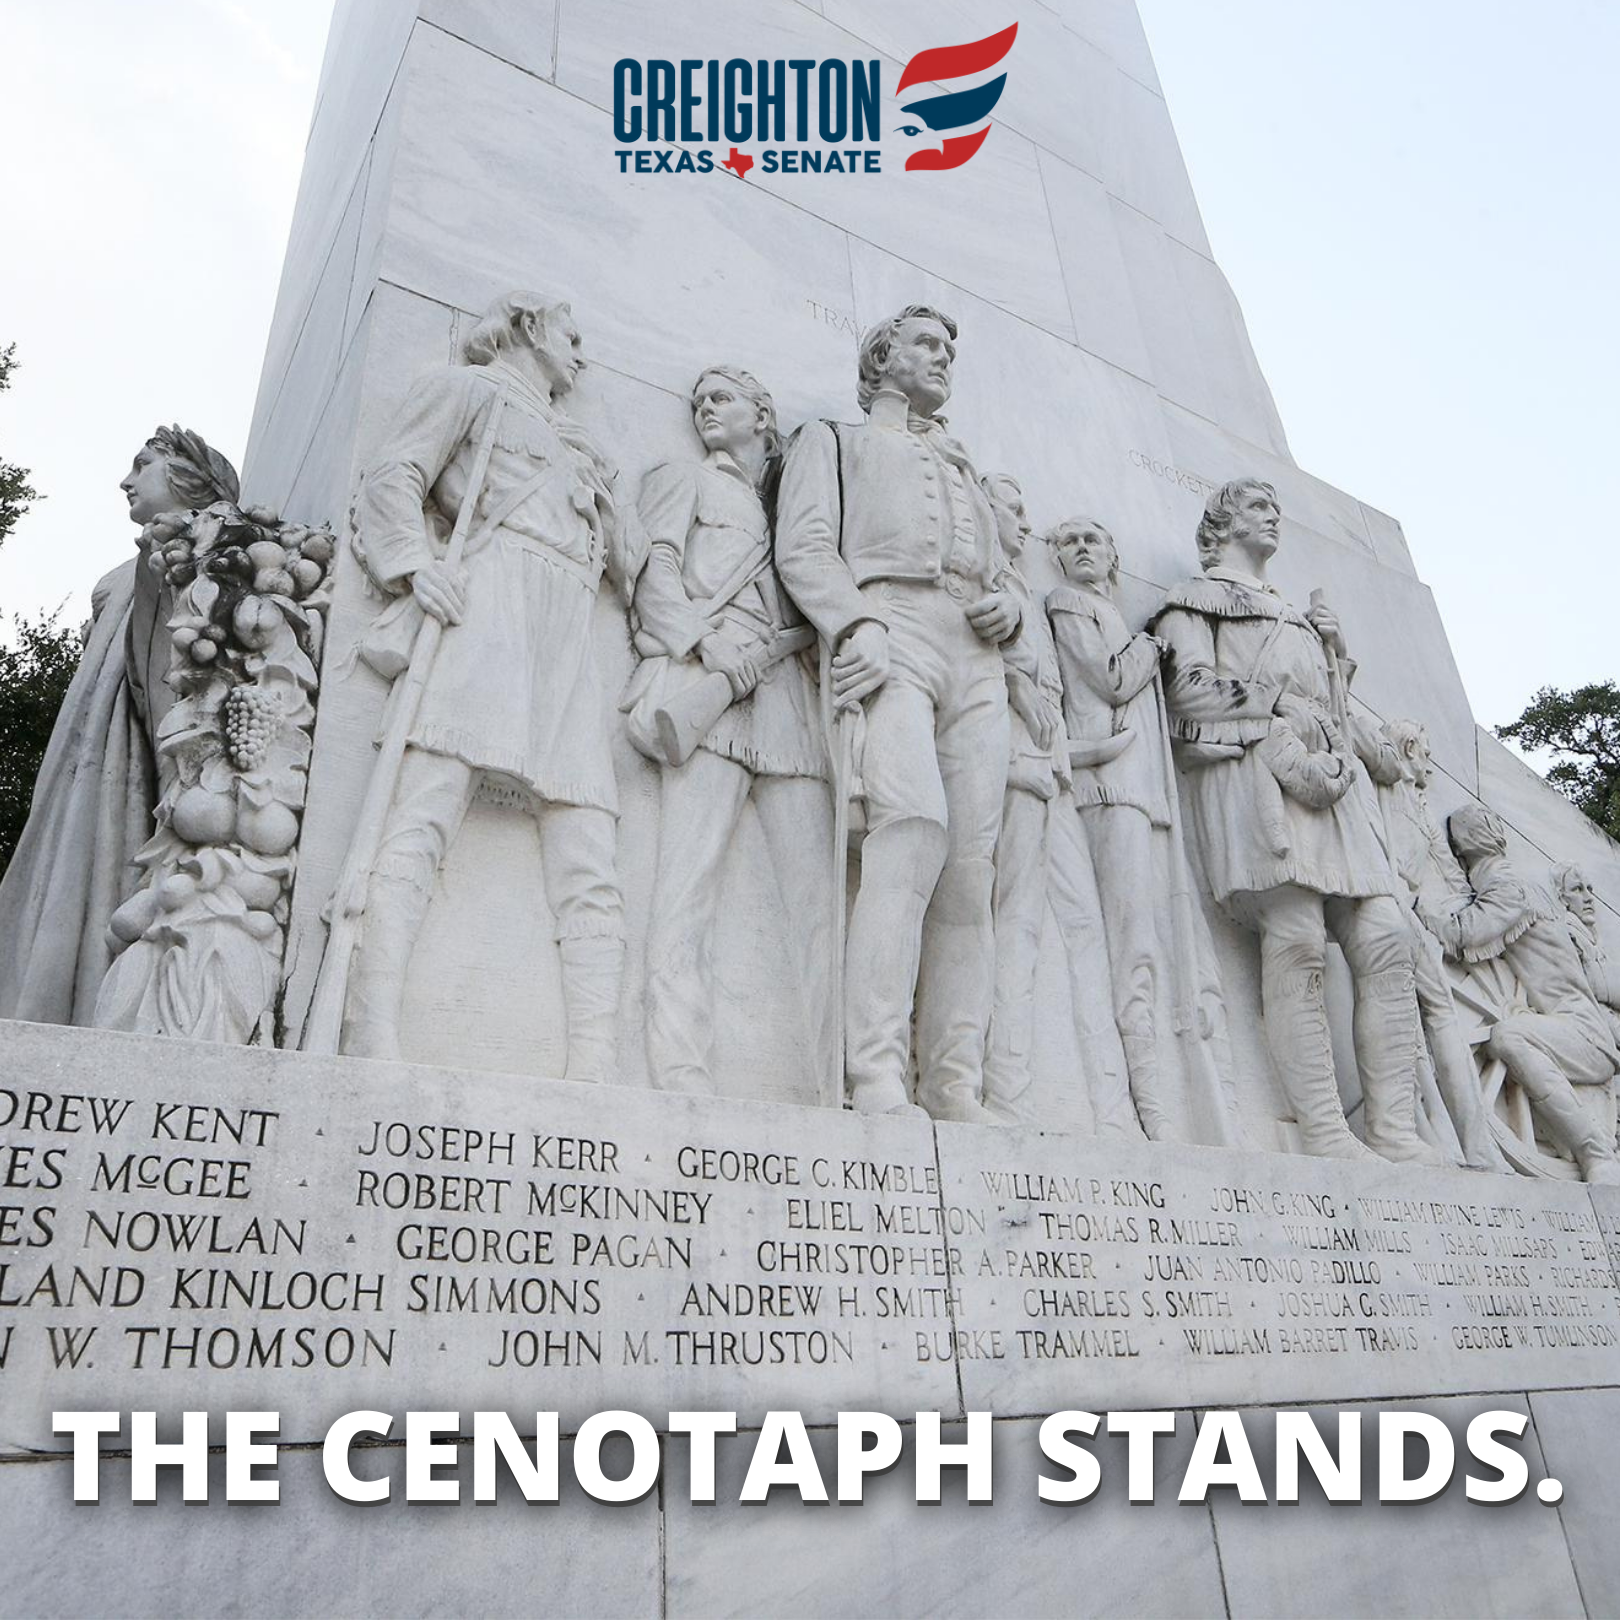 The Cenotaph Stands